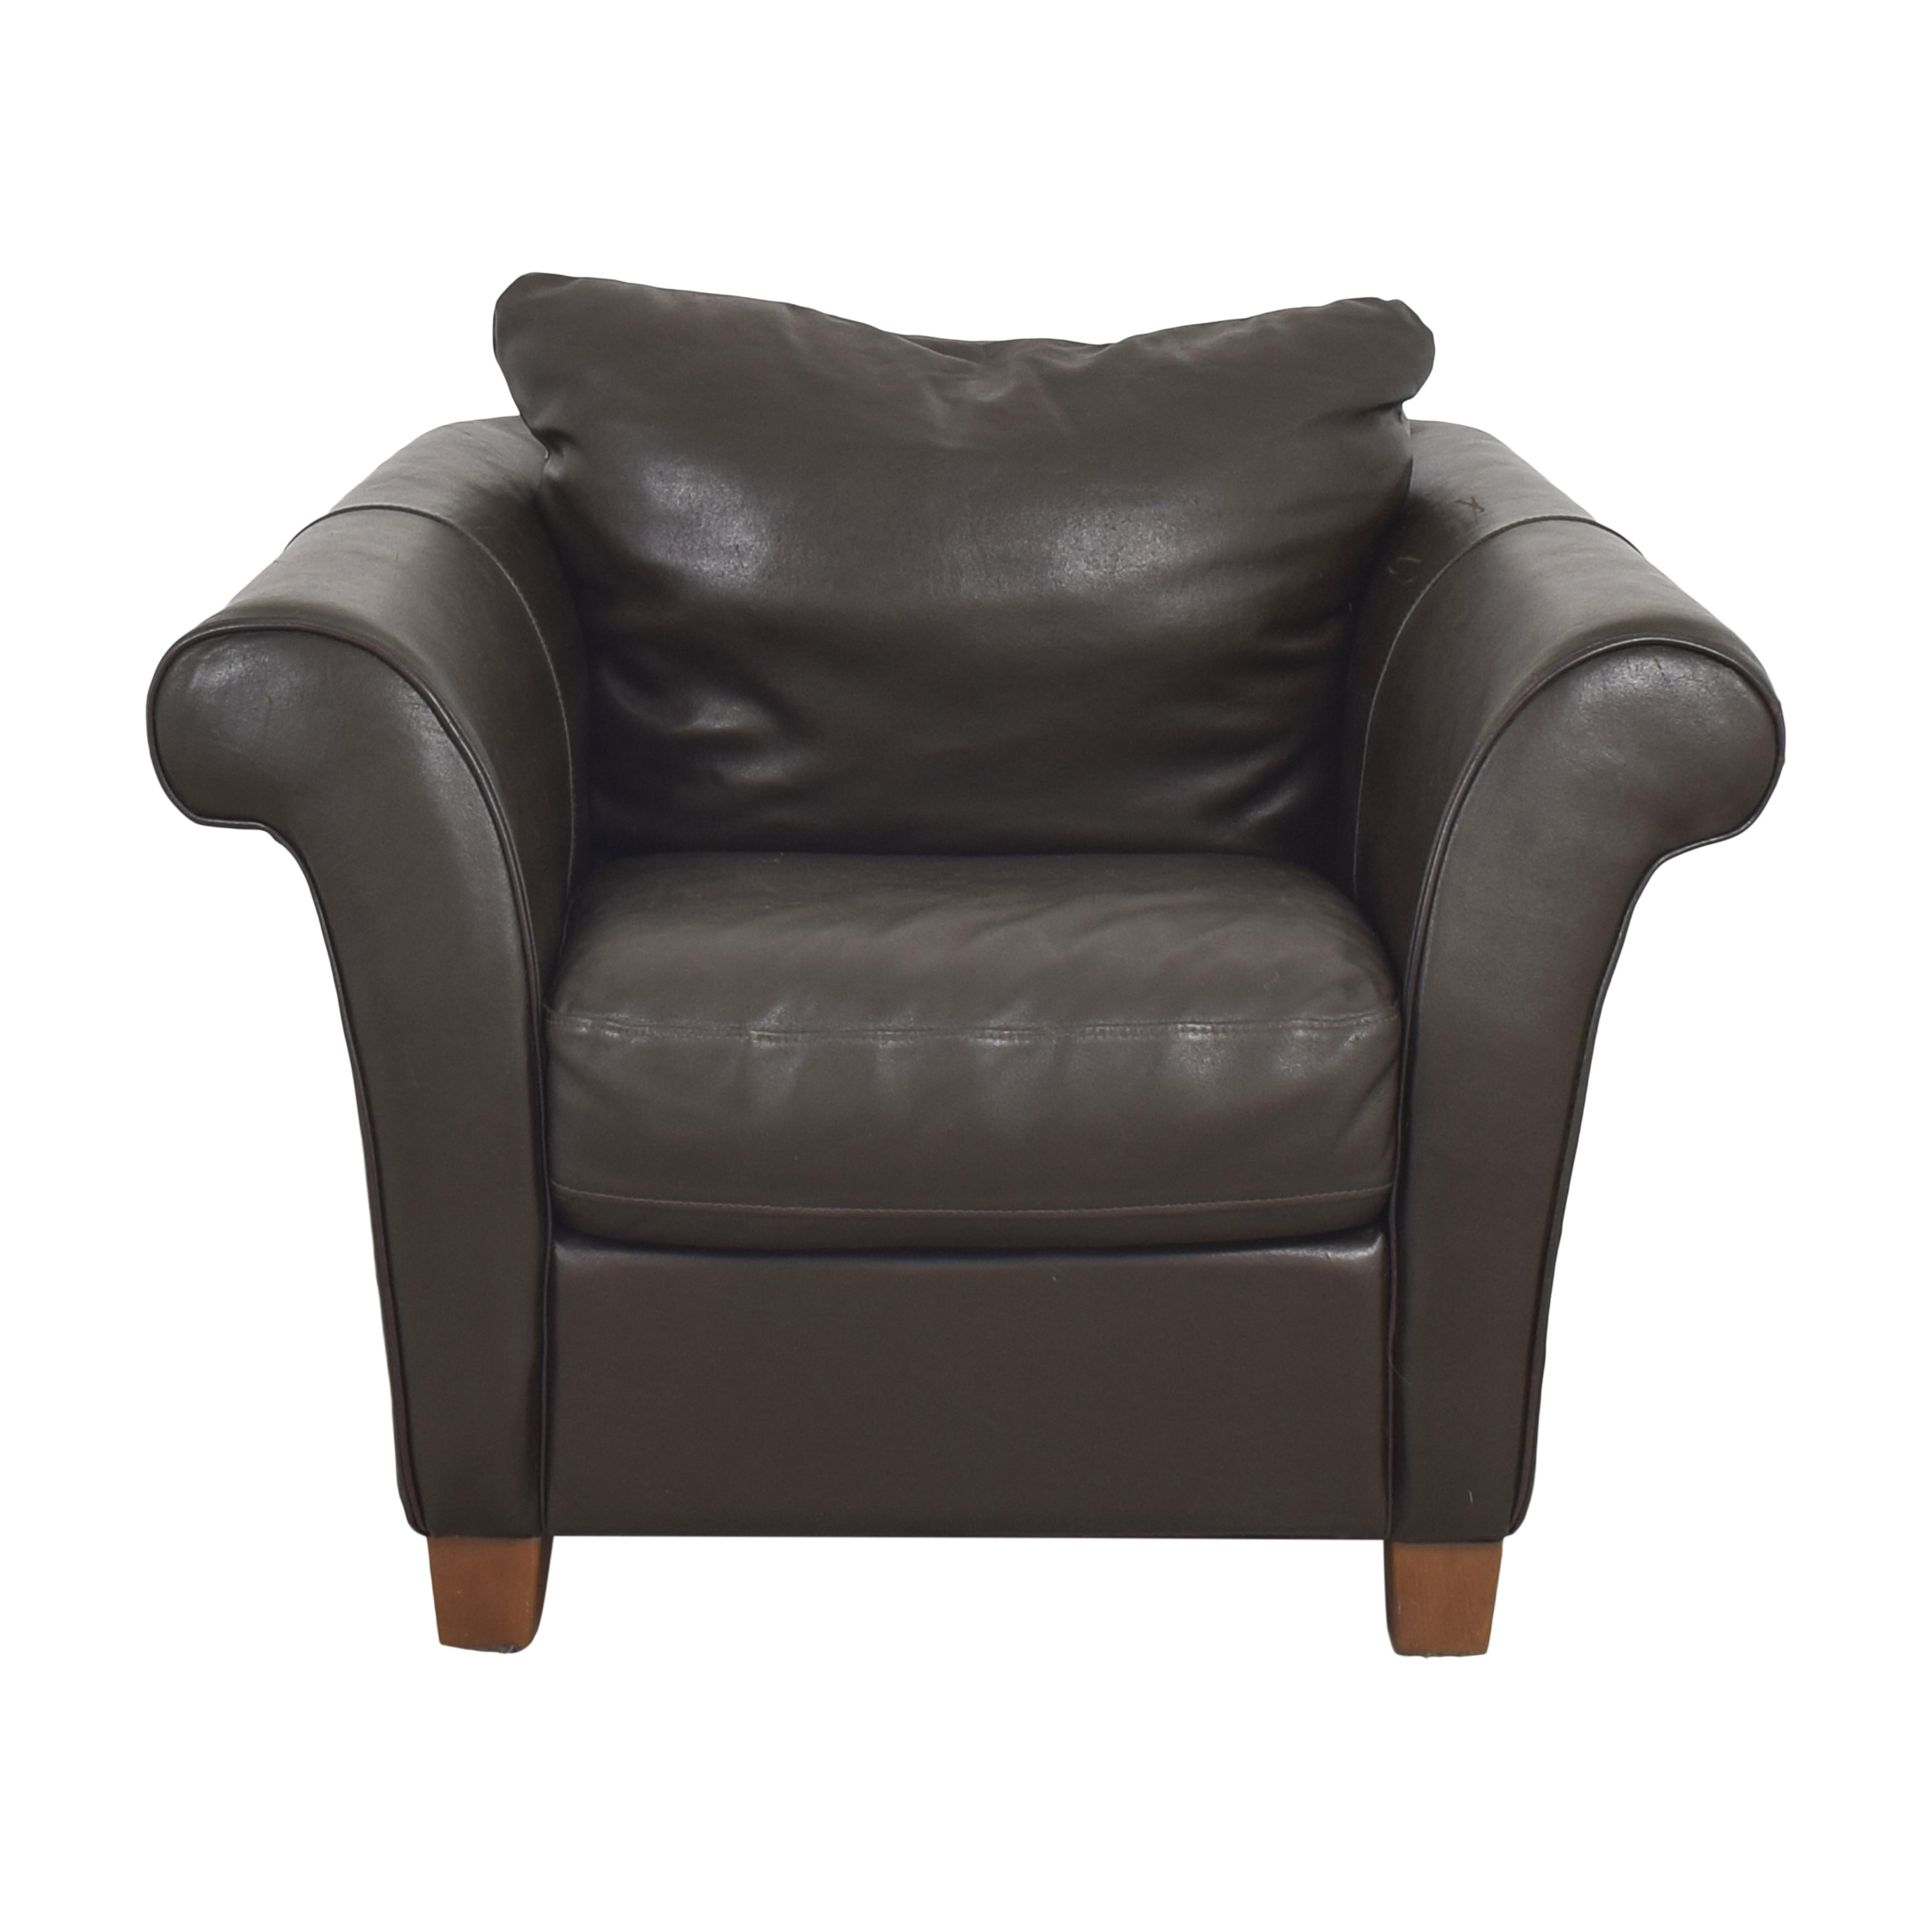 shop Macy's Macy's Lounge Chair with Ottoman online